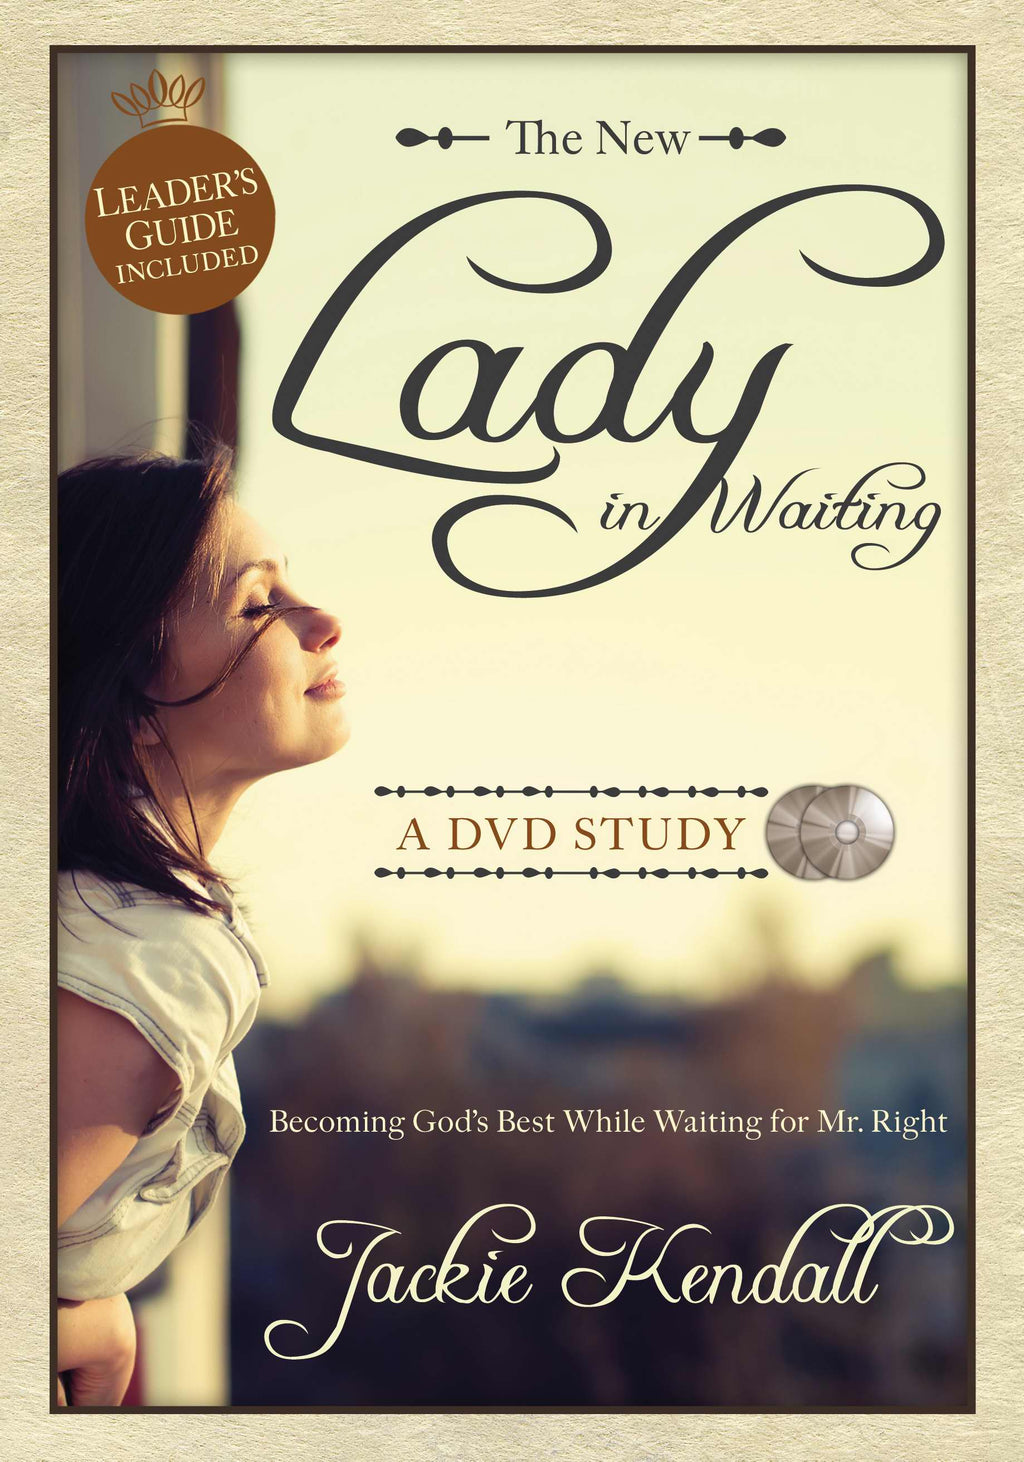 DVD-Lady In Waiting Study (2 DVD)